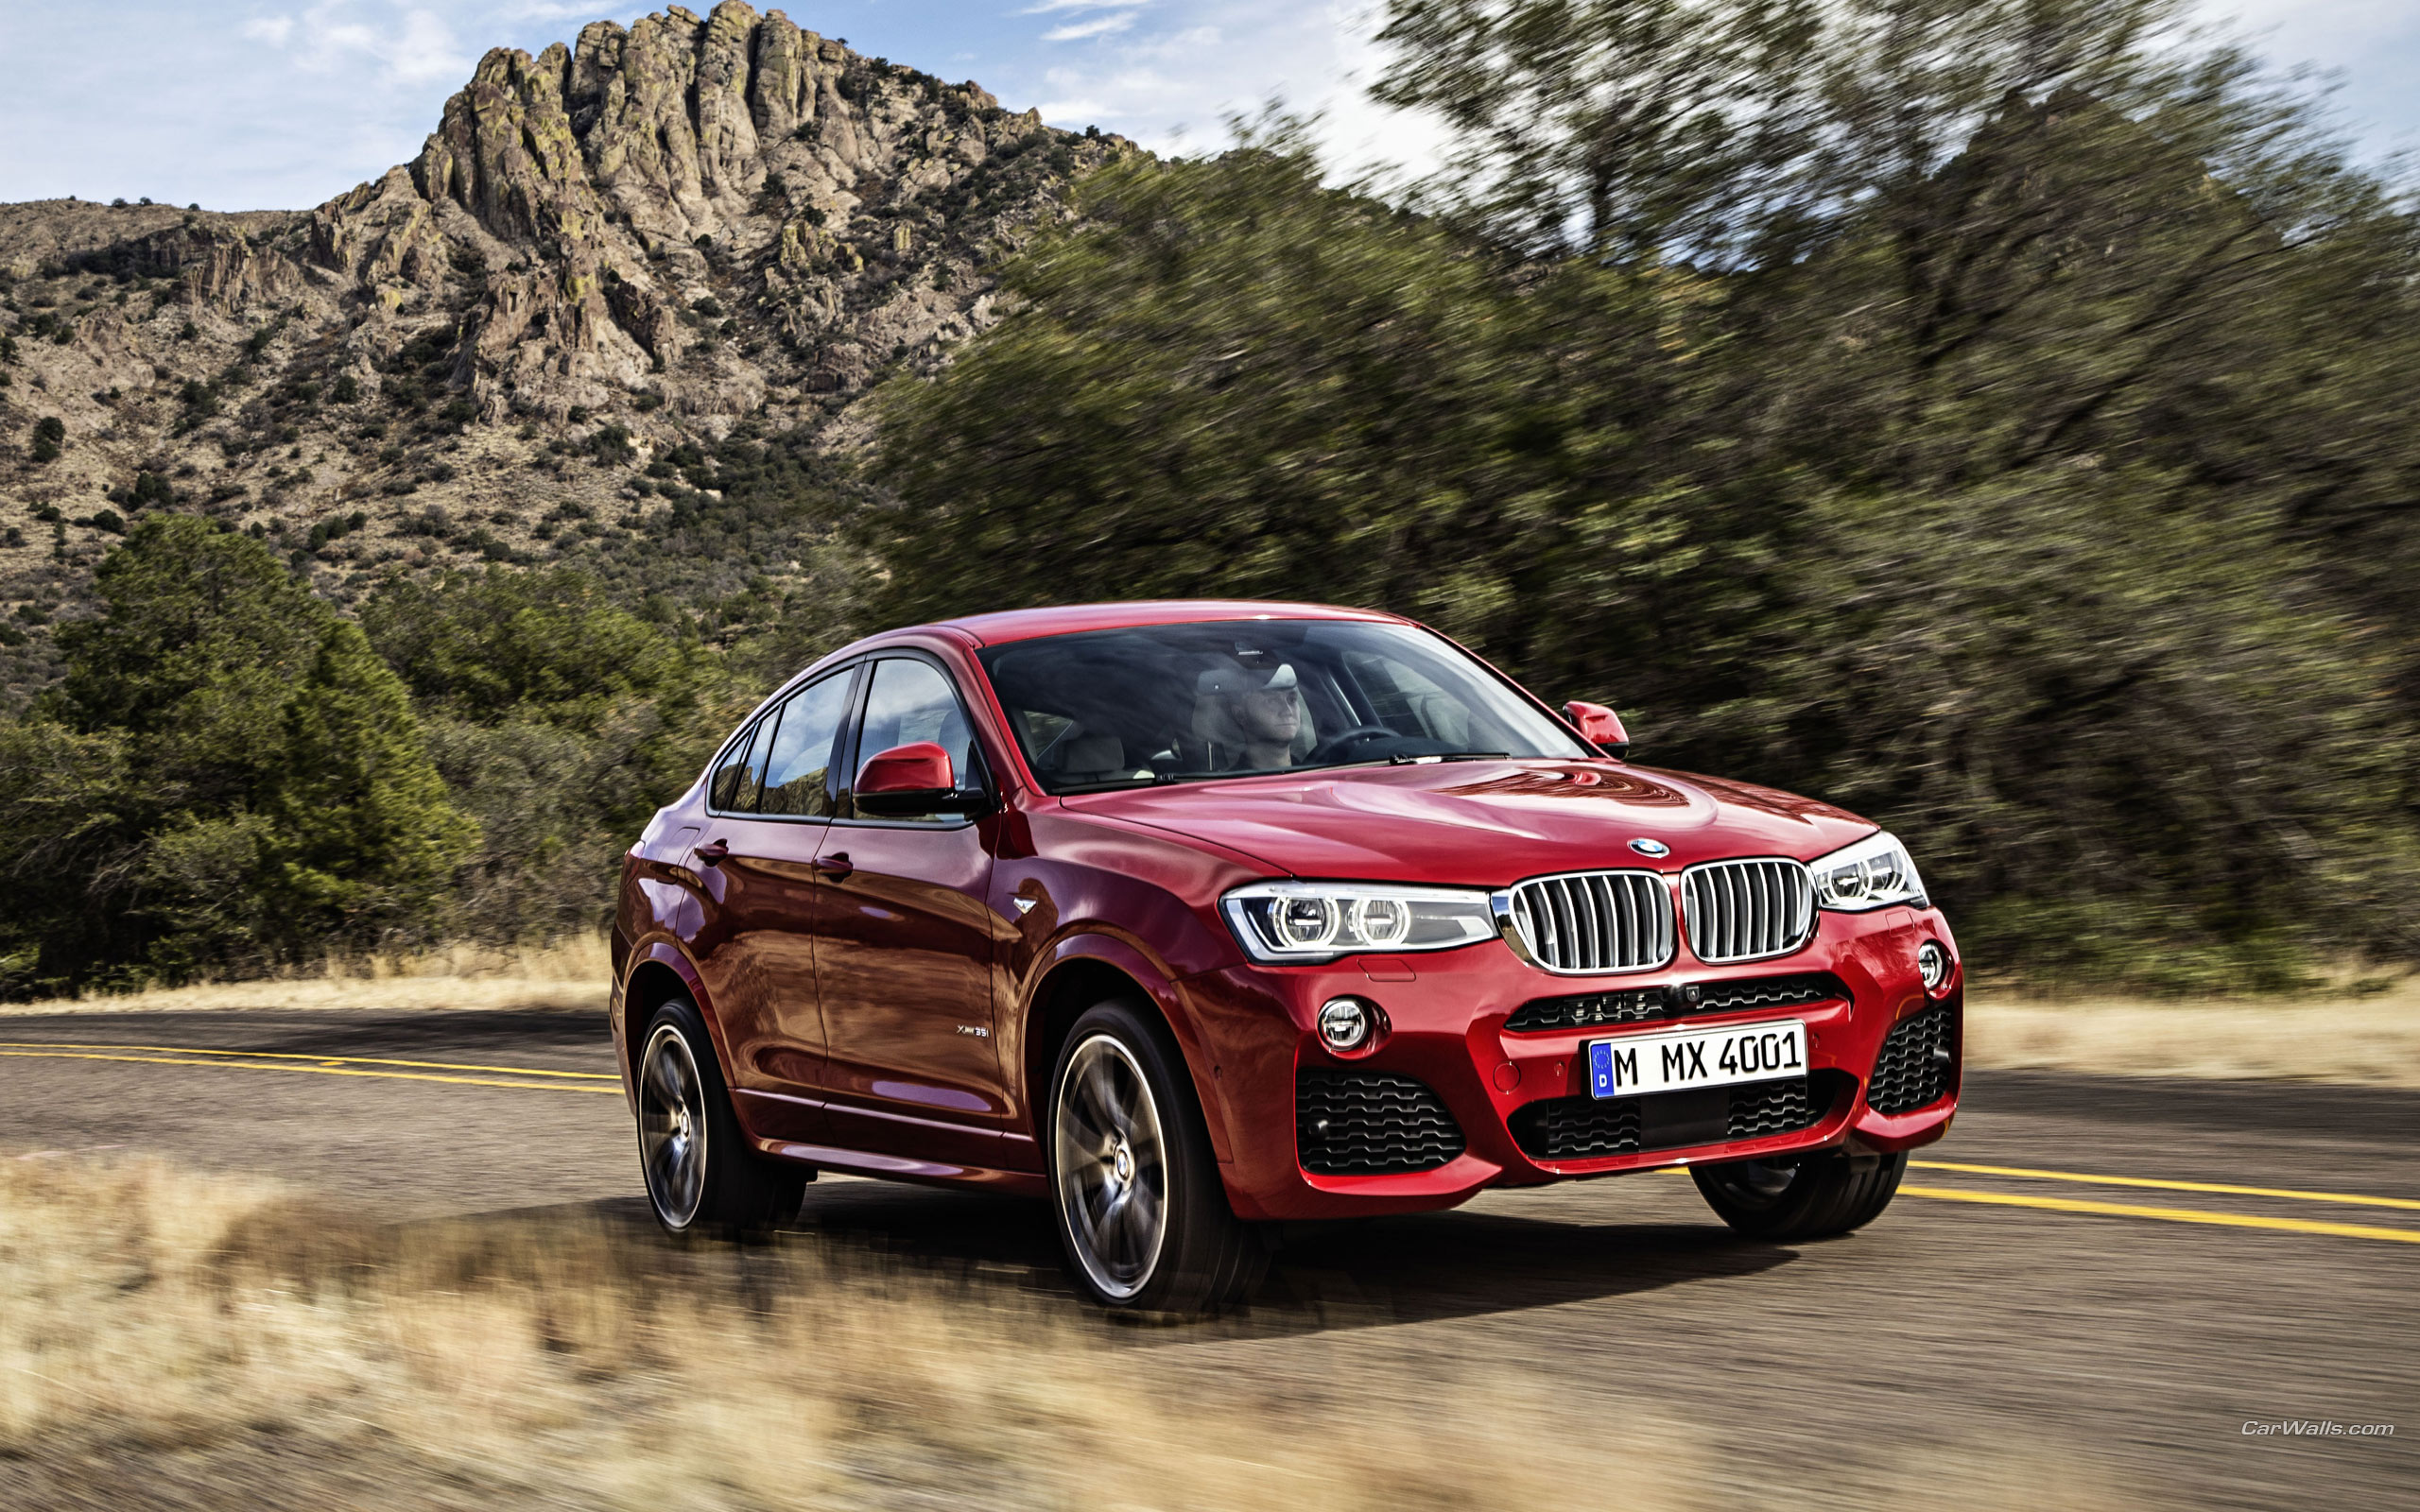 BMW X4 2015 Free Picture Download Image Of